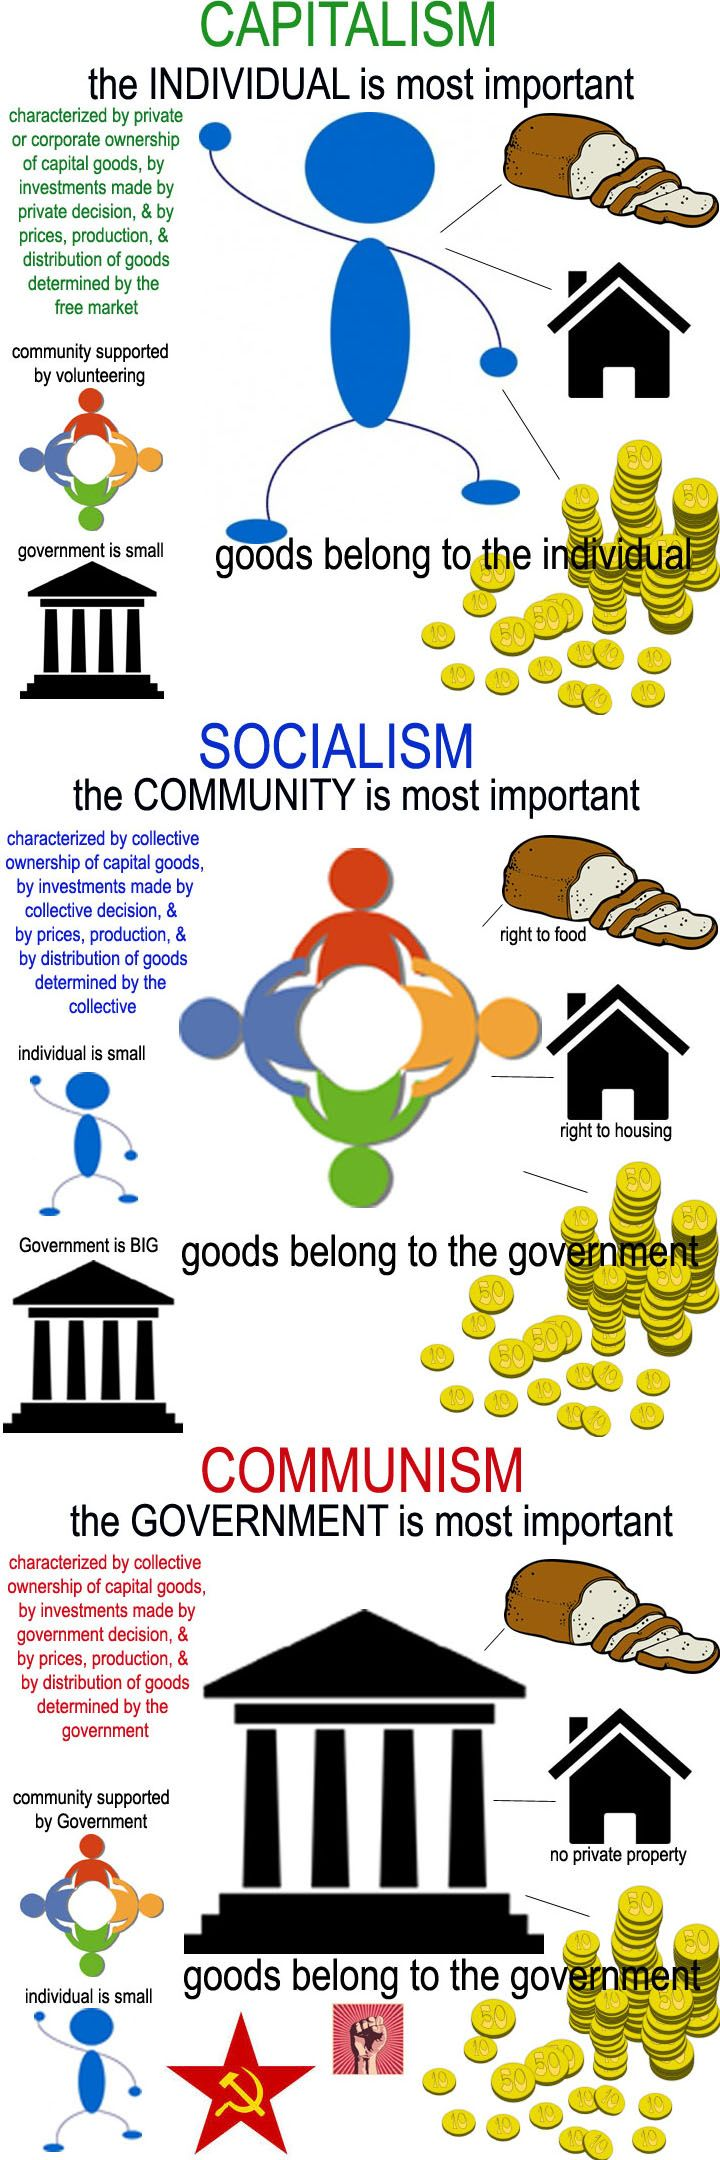 Free Capitalism Cliparts, Download Free Clip Art, Free Clip.